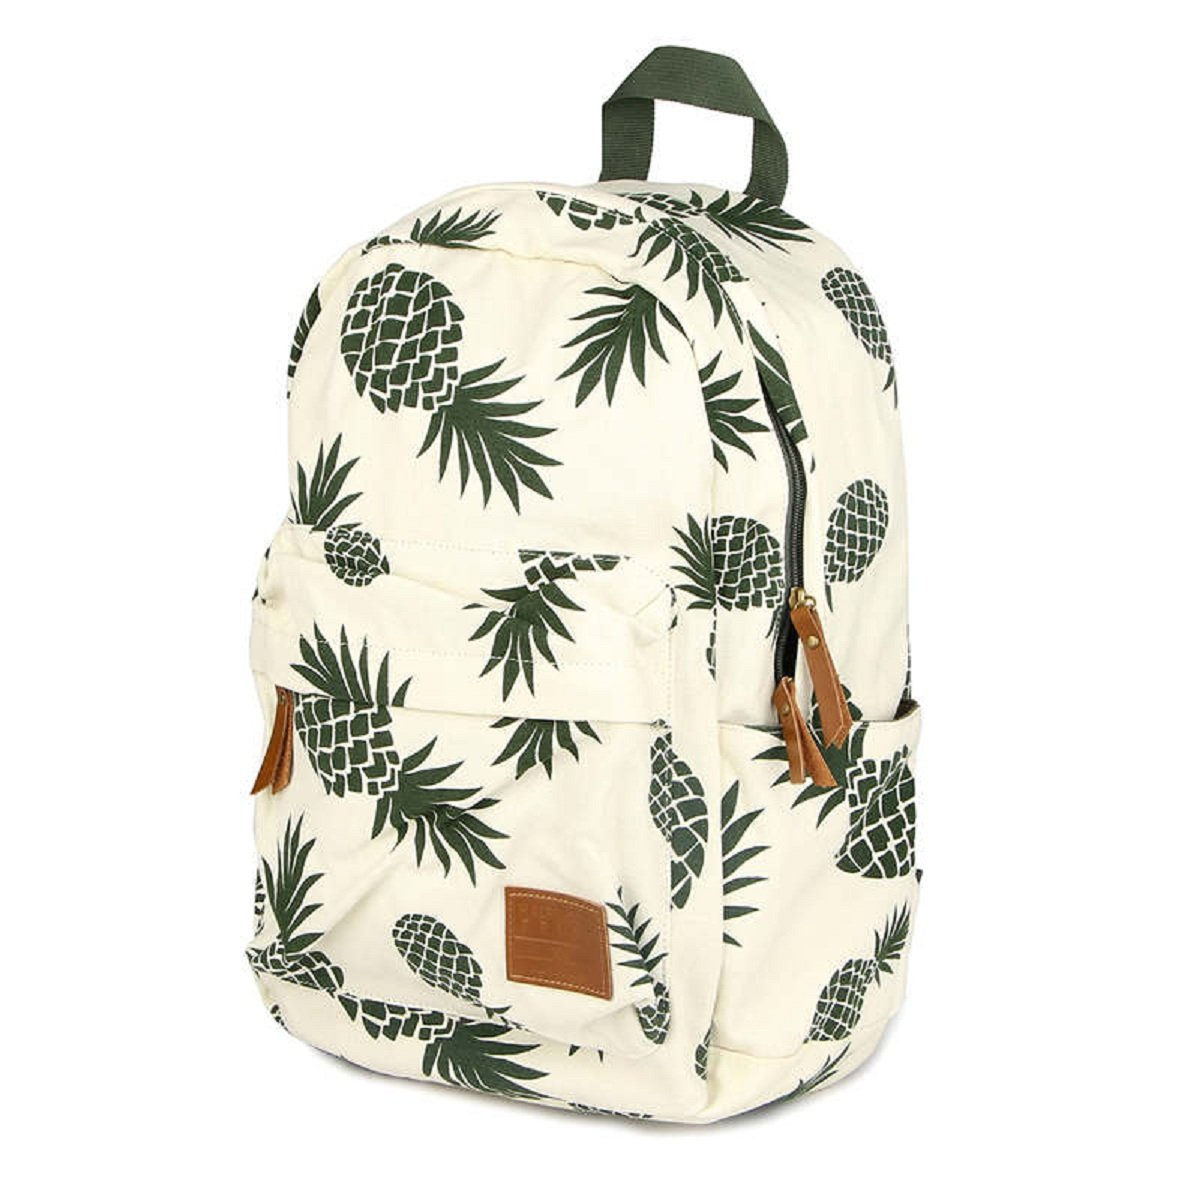 a1479e5f3f29 CCOHO White Pineapple School Backpack Travel Daypack College Canvas Bookbag  Laptop Bag Laptop Packs Women